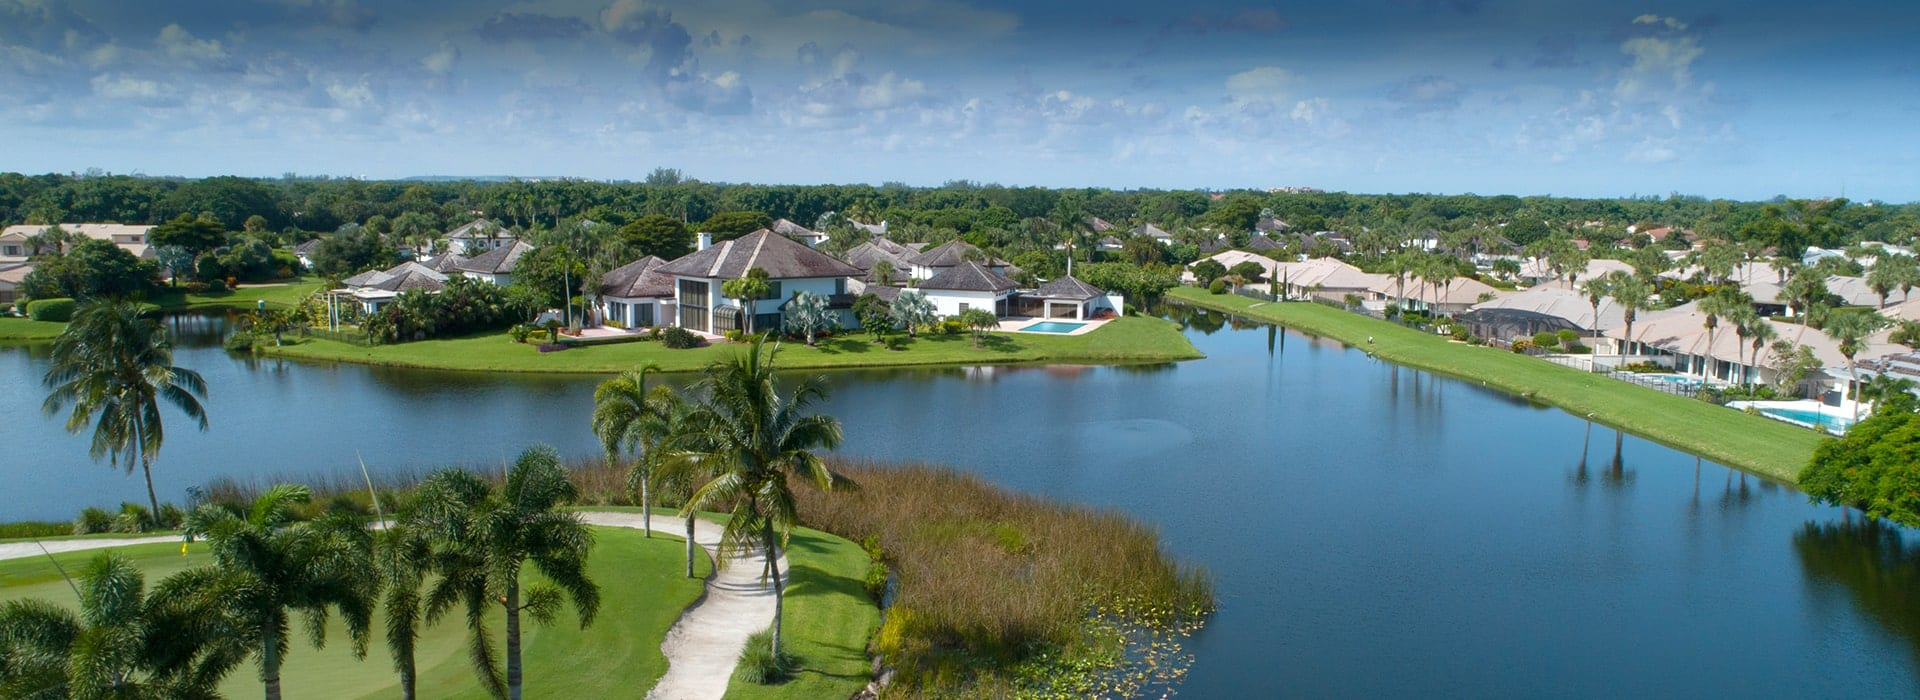 Boca West one or two-story single family homes in The Pointe along golf fairway